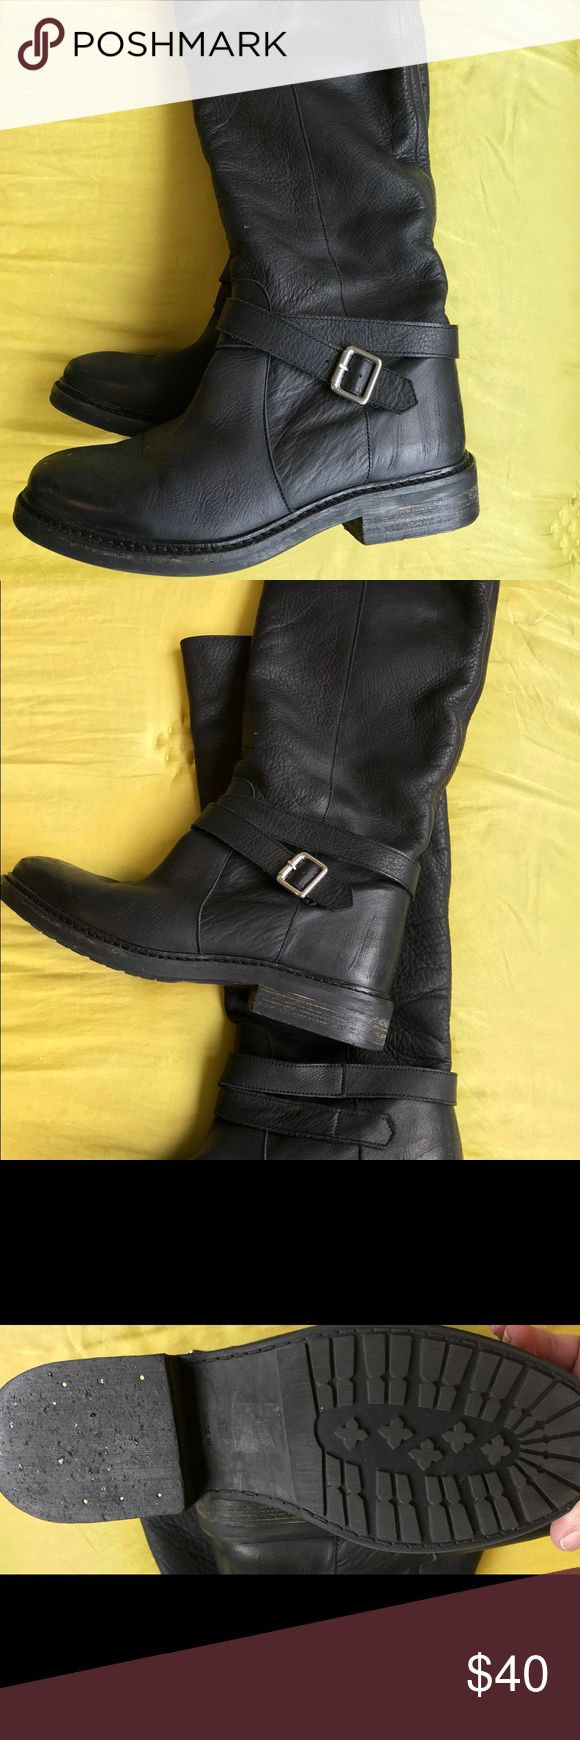 Leather boots by KG Kurt Geiger, size 37 (7) These pull on supple leather boots are gorgeous and comfortable.  Look great with everything.  In nearly new condition. K.G. Kurt Geiger Shoes Combat & Moto Boots